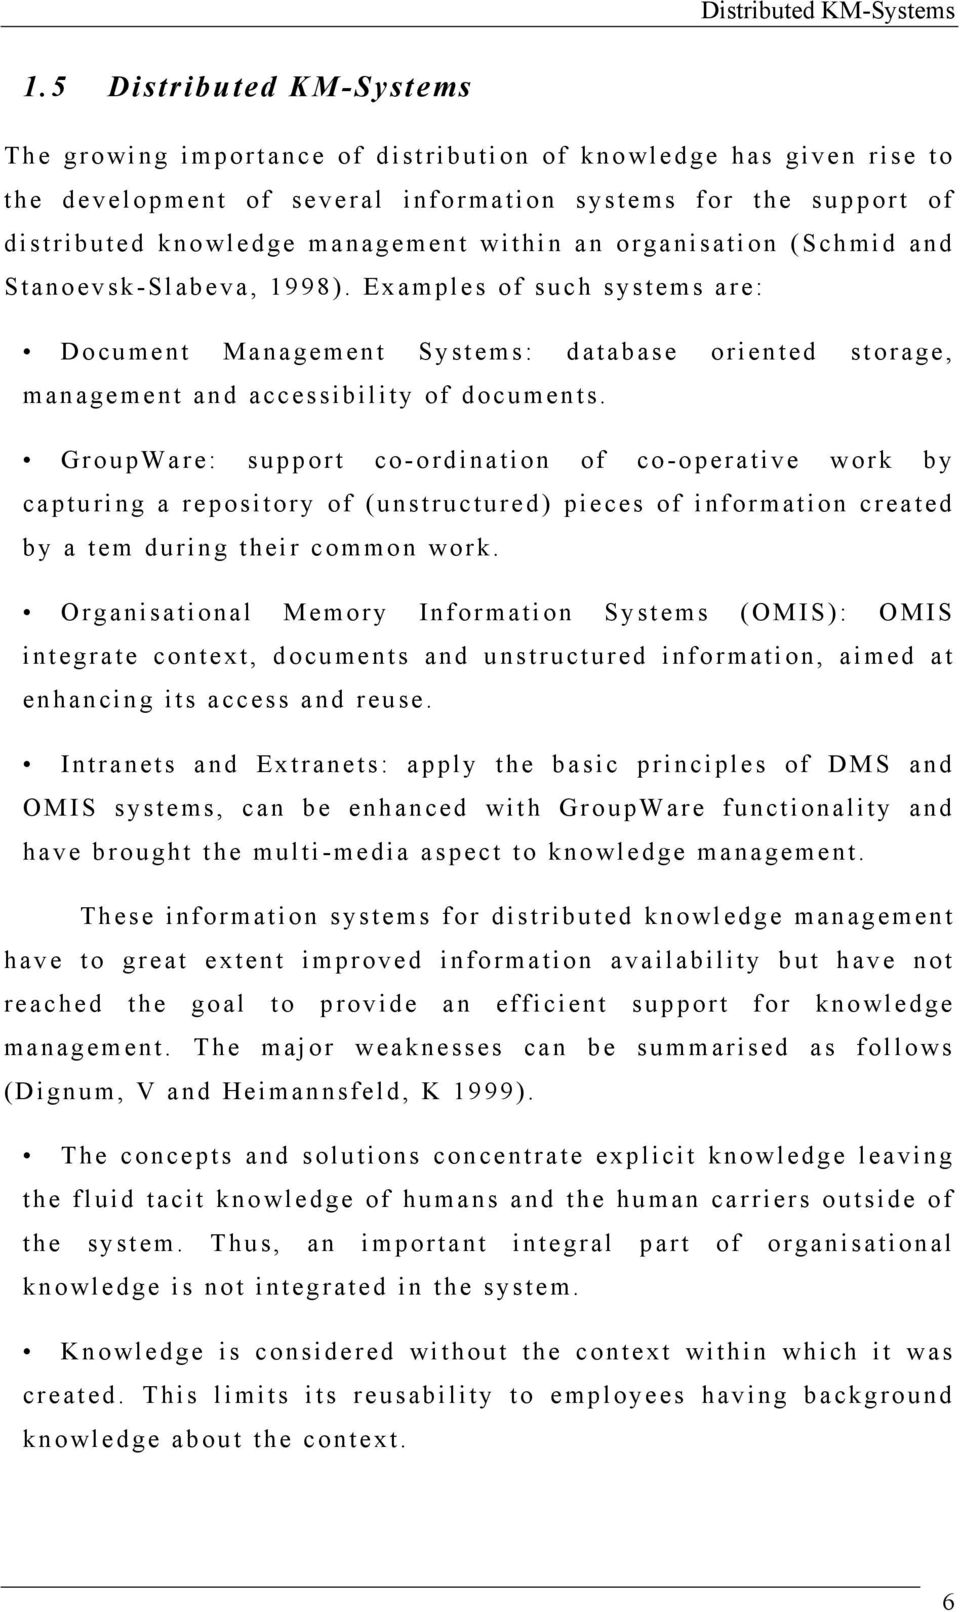 within an organisation (Schmid and Stanoevsk-Slabeva, 1998). Examples of such systems are: Document Management Systems: database oriented storage, management and accessibility of documents.